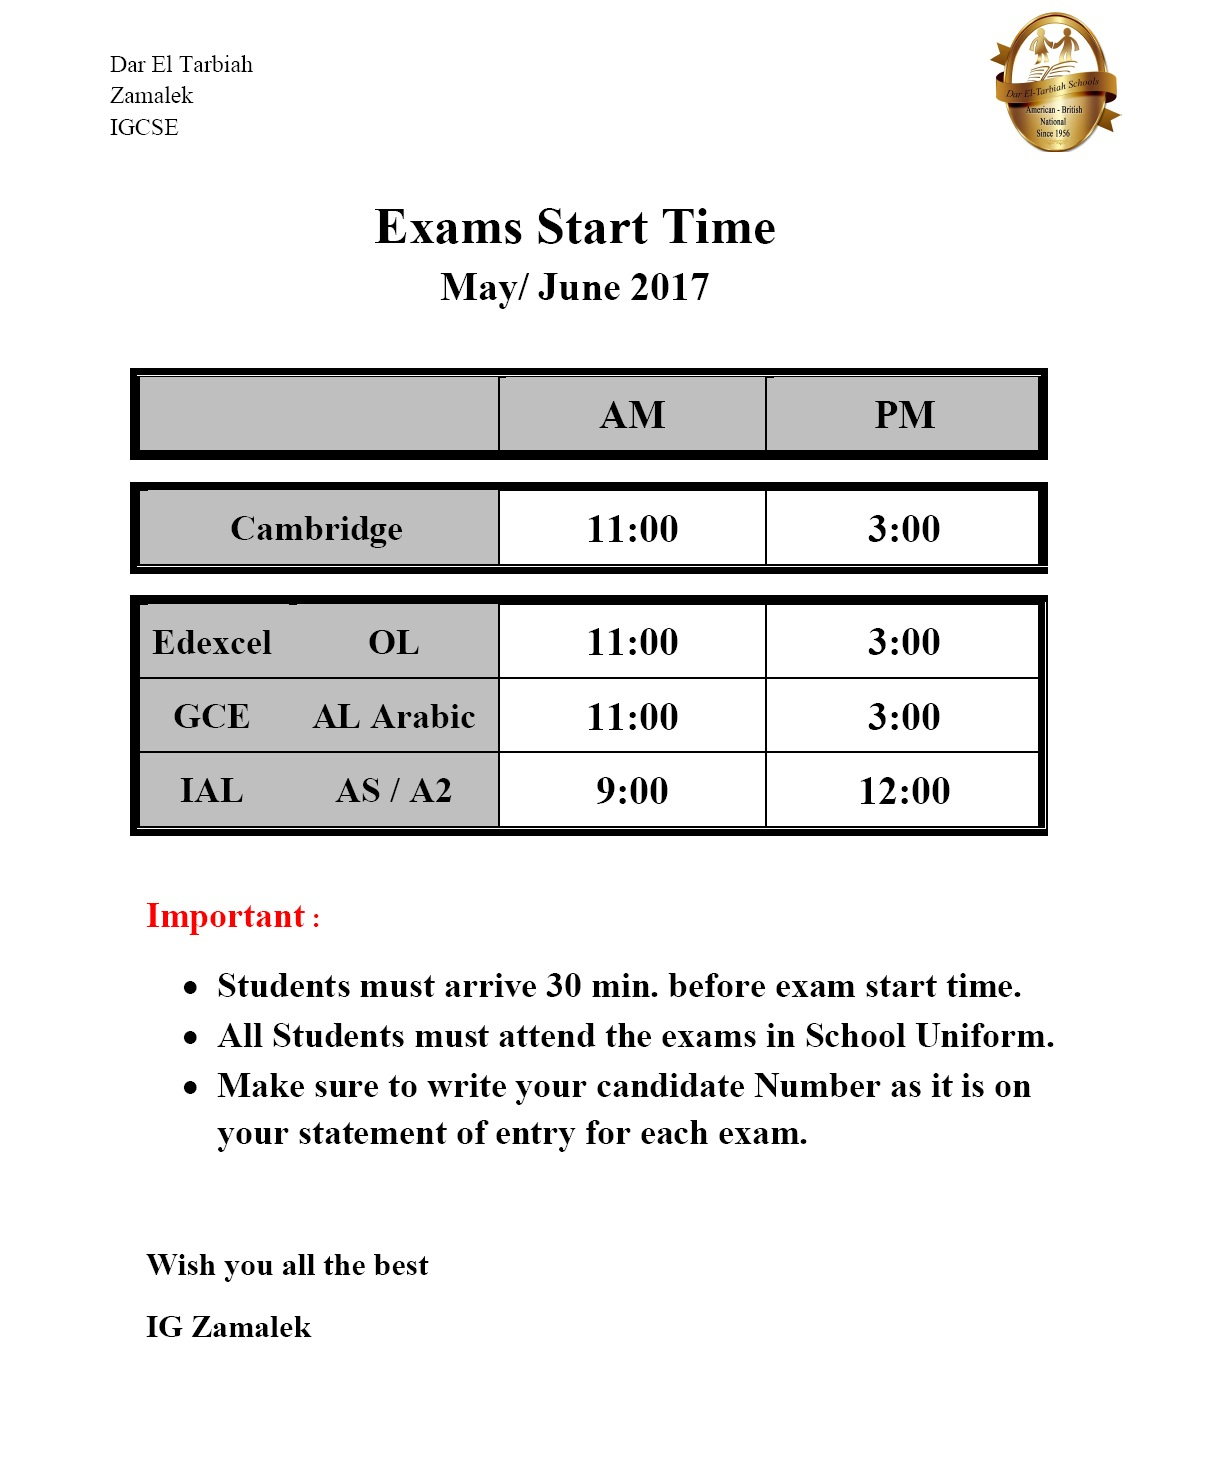 IG Zamalek - Exam Start Times June 2017